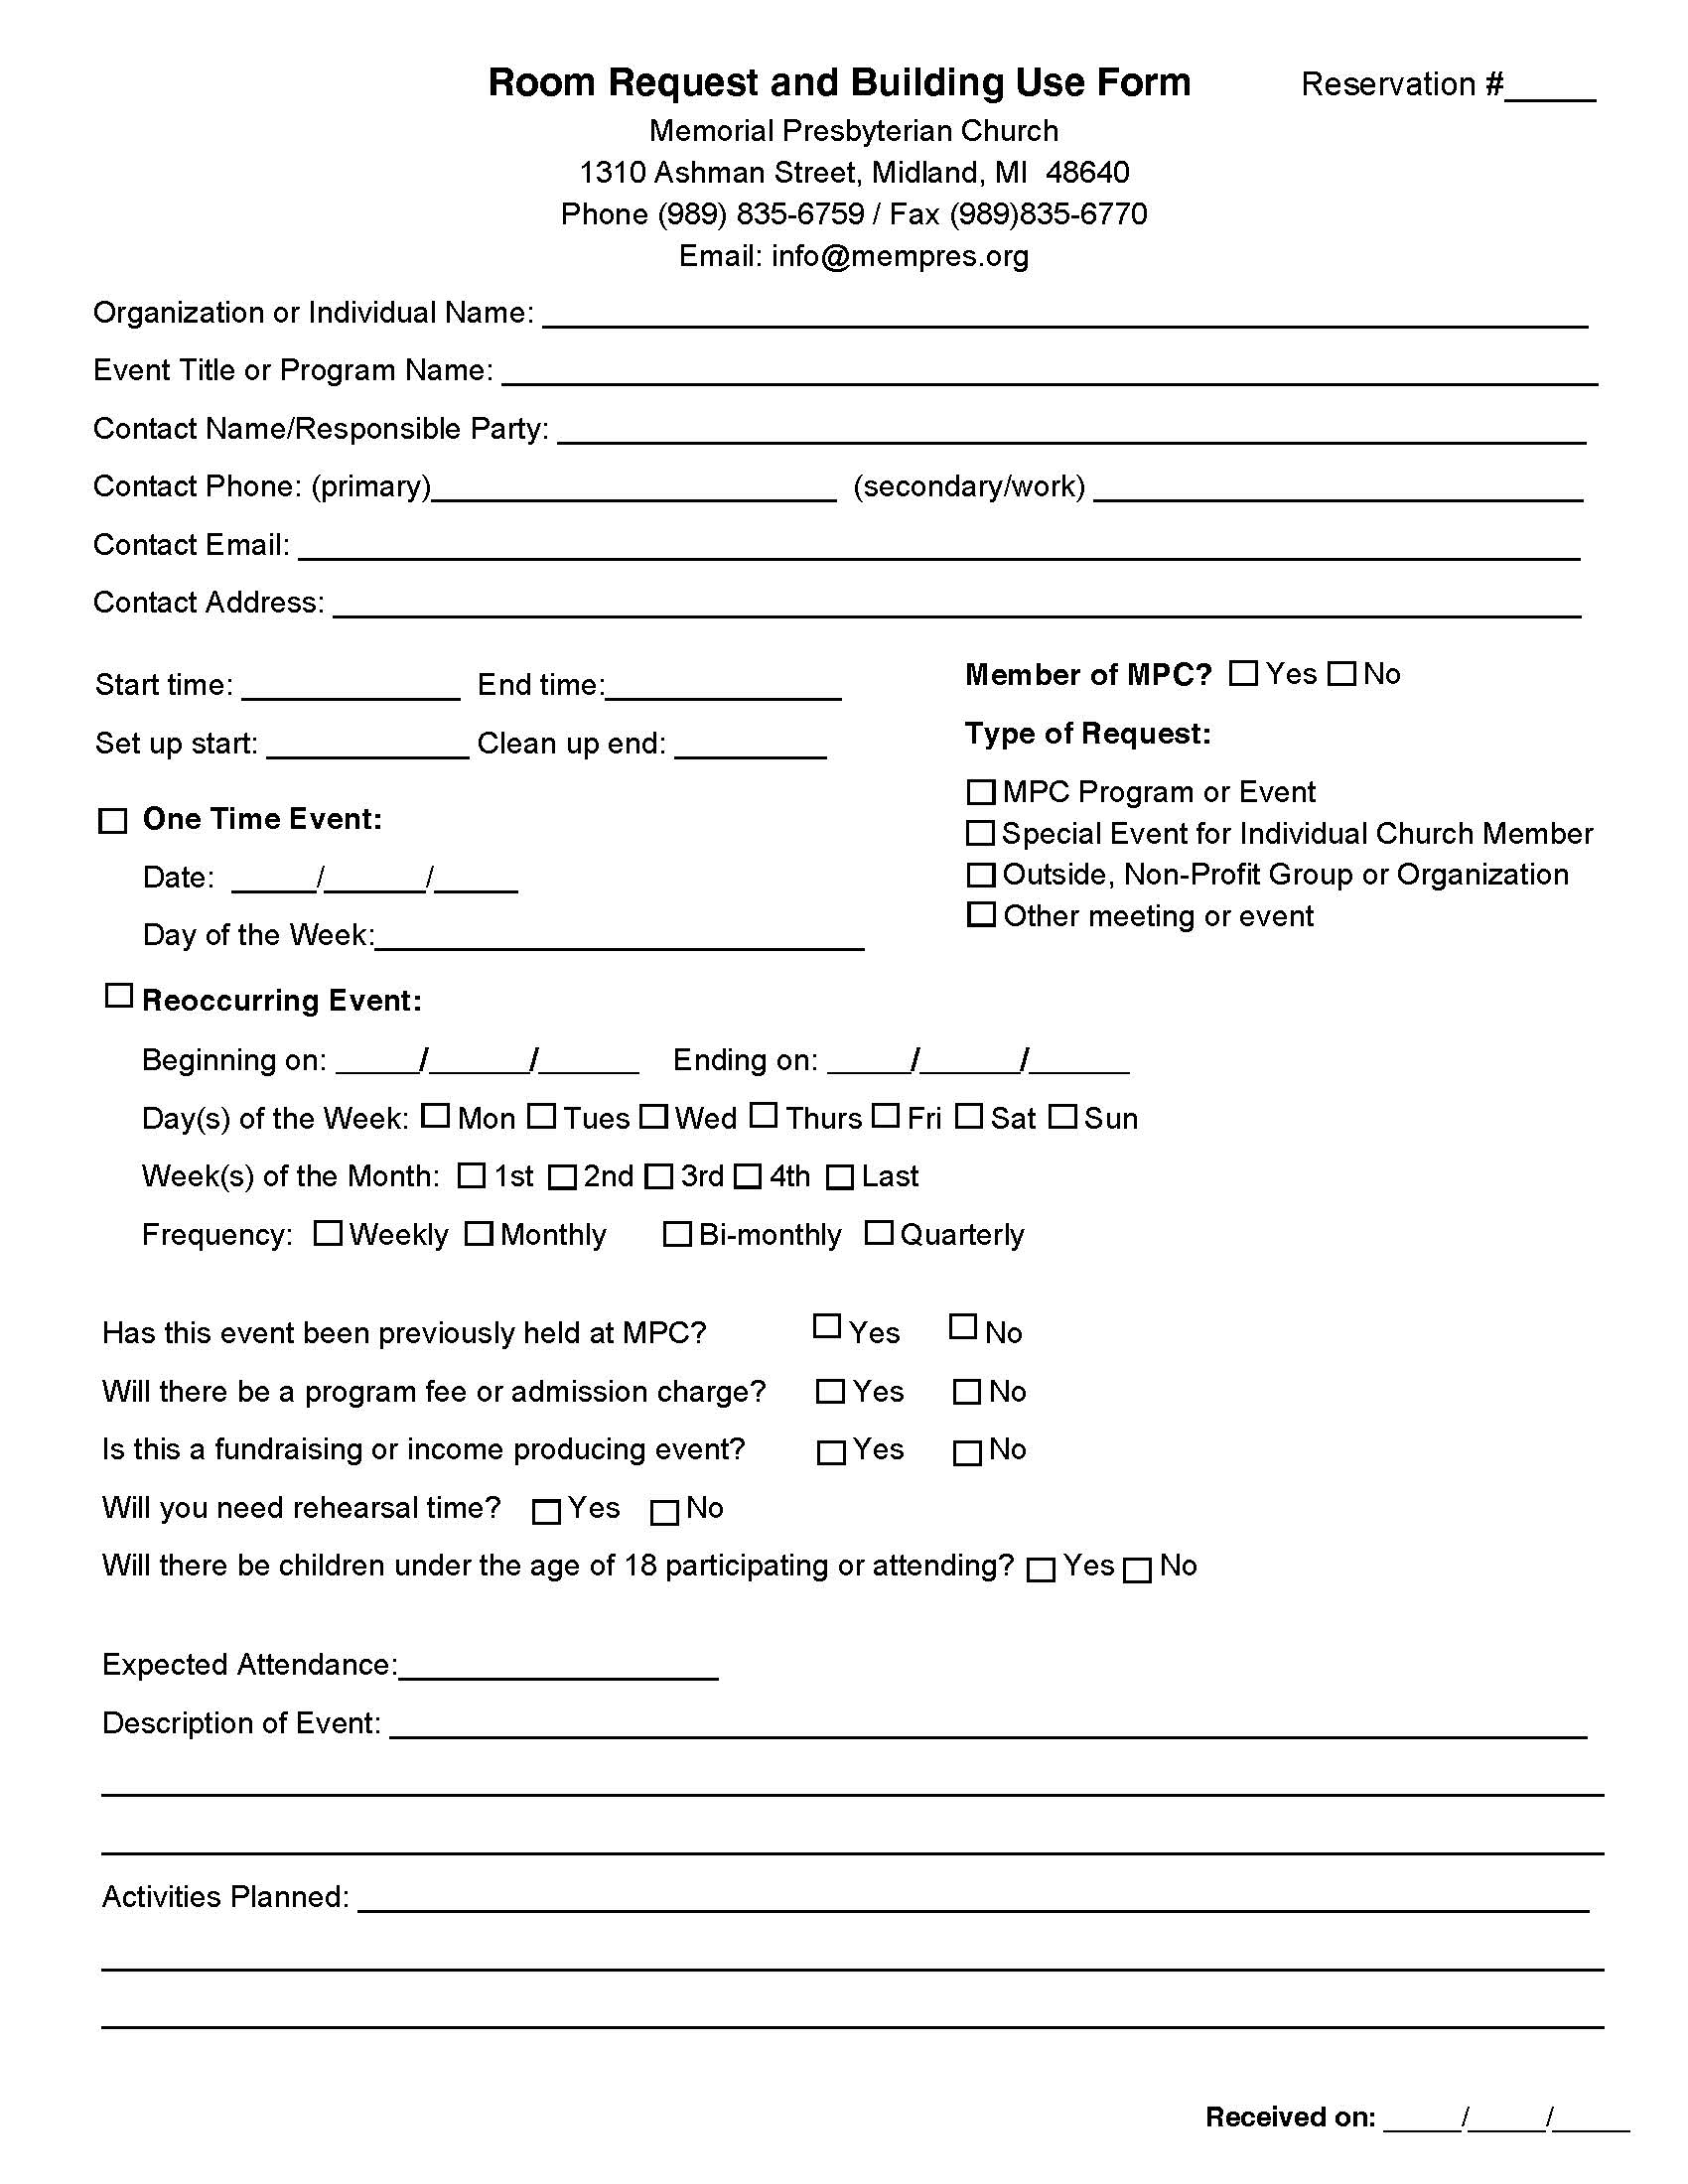 Room Request & Building Use Form -